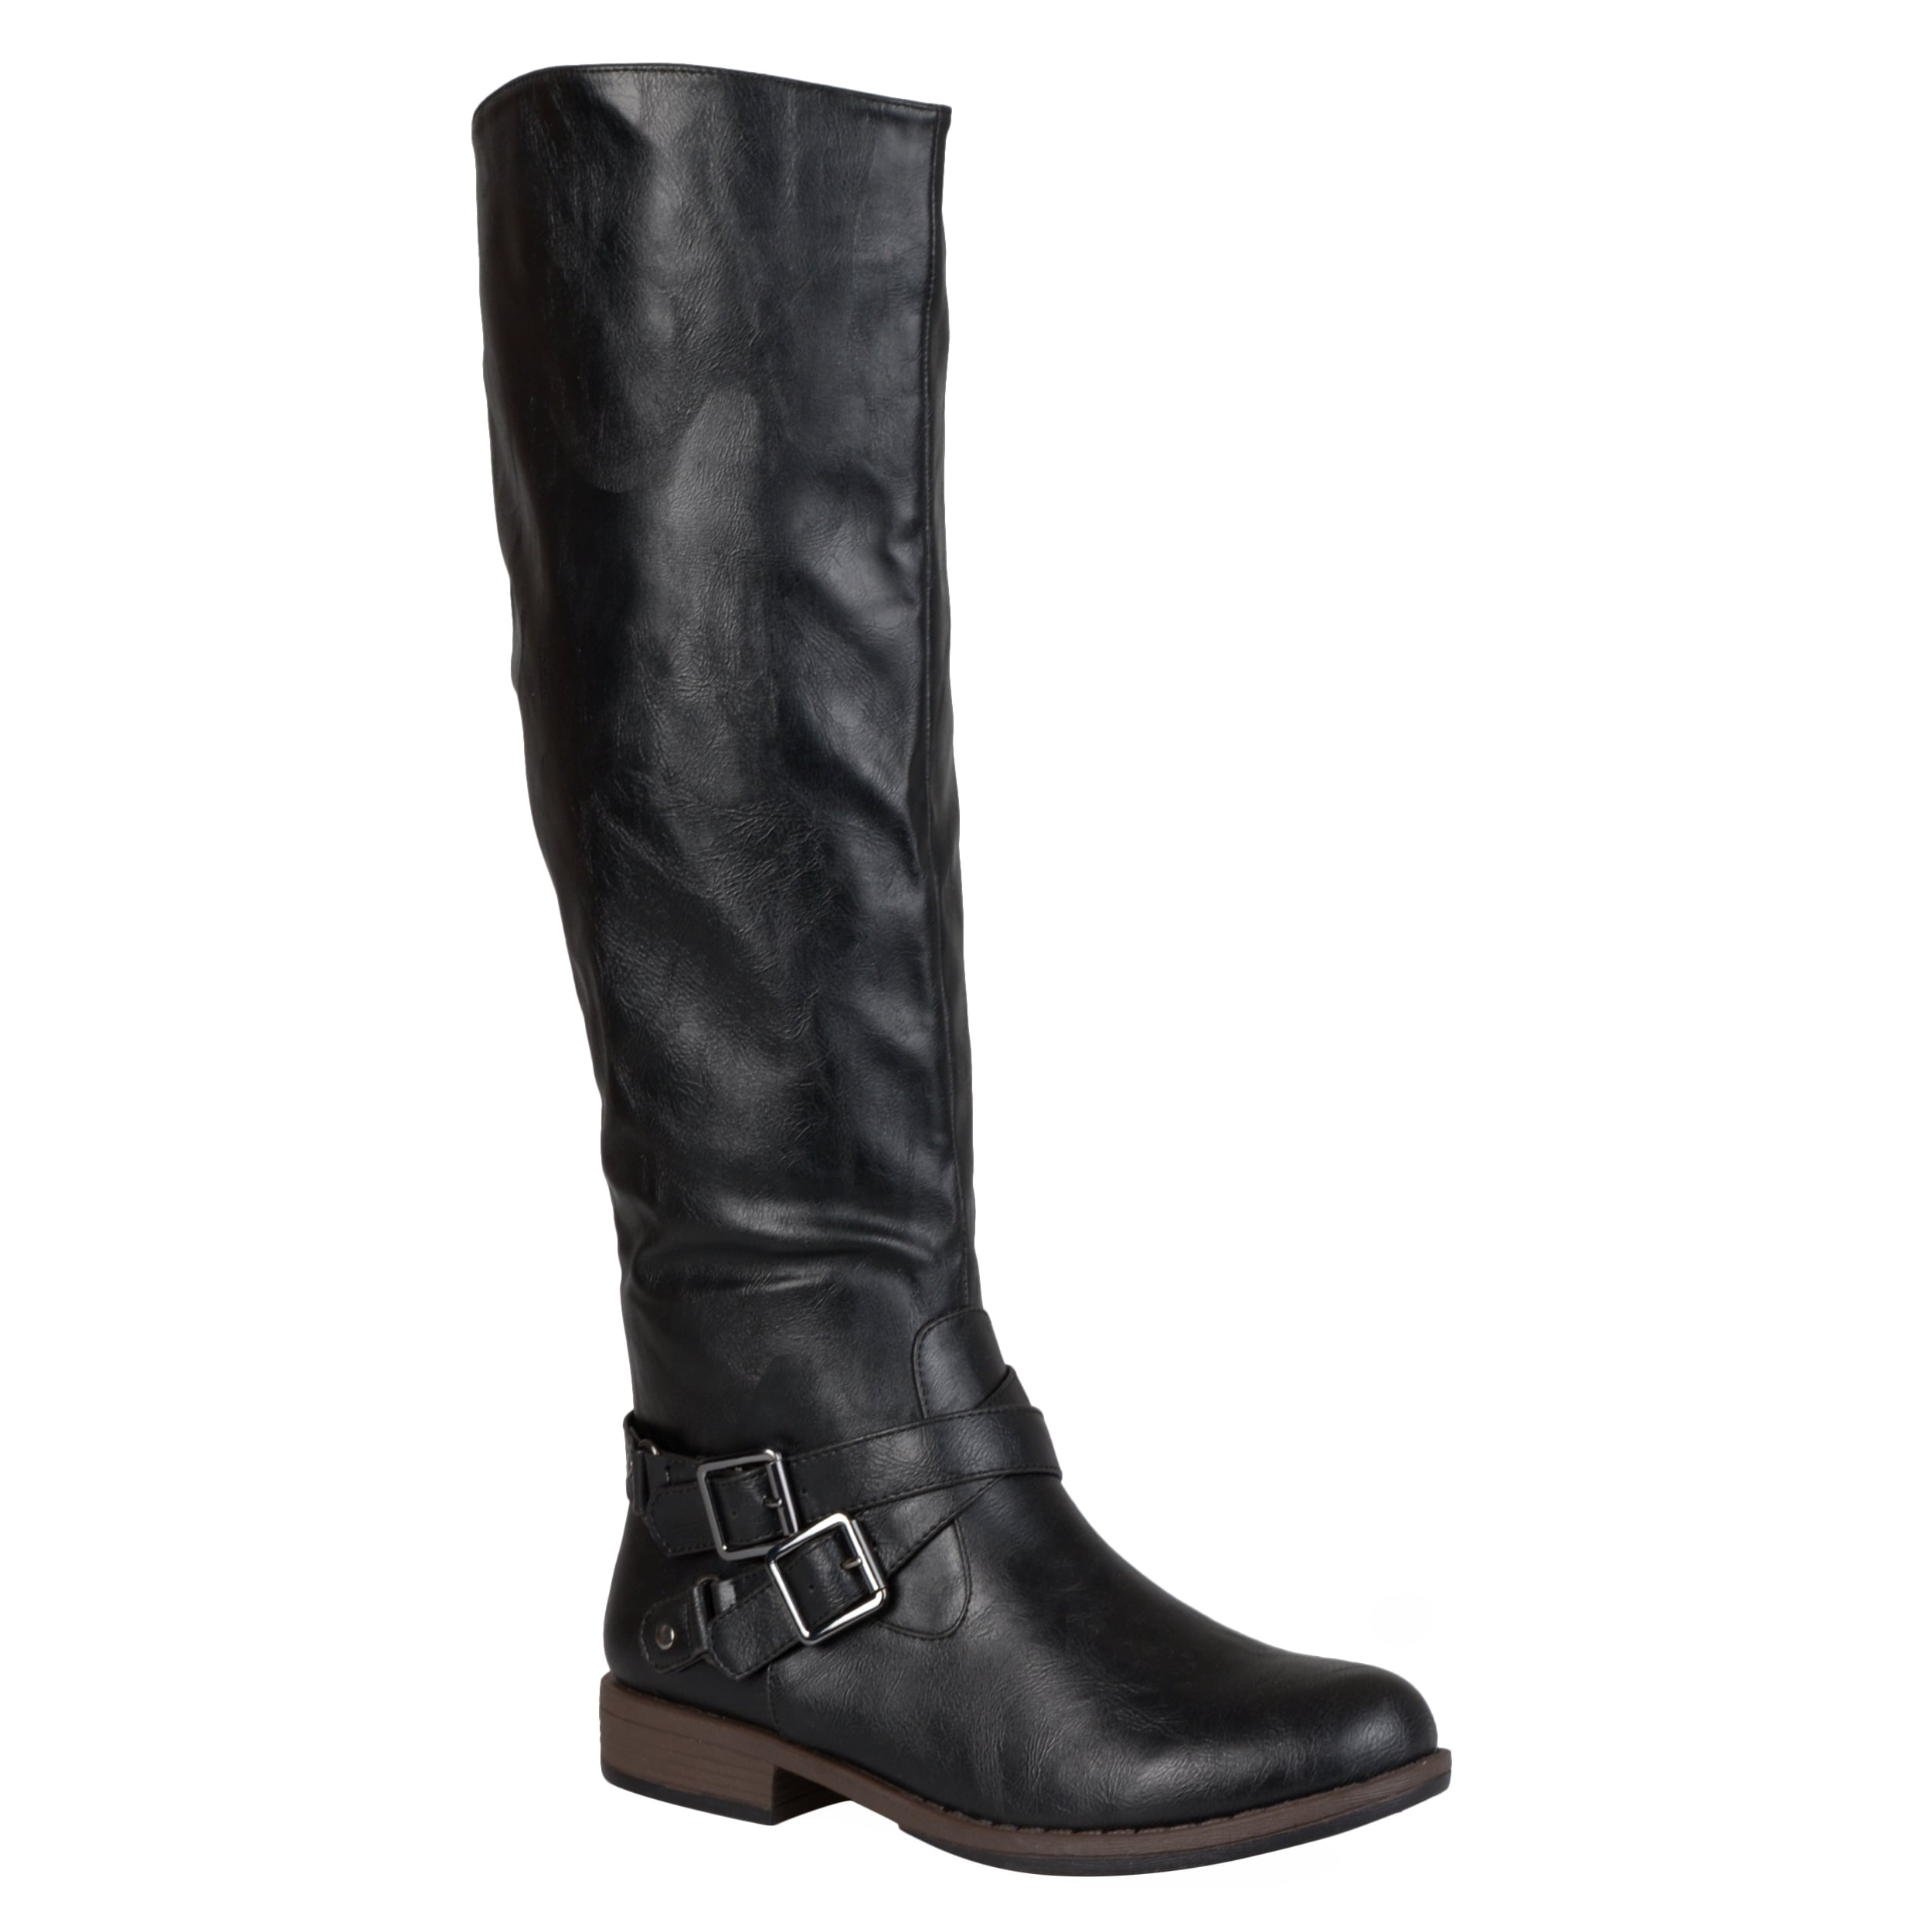 b35ea4555b7 Shop Journee Collection Women s  April  Regular and Wide Calf Boot - On  Sale - Free Shipping Today - Overstock - 9346470